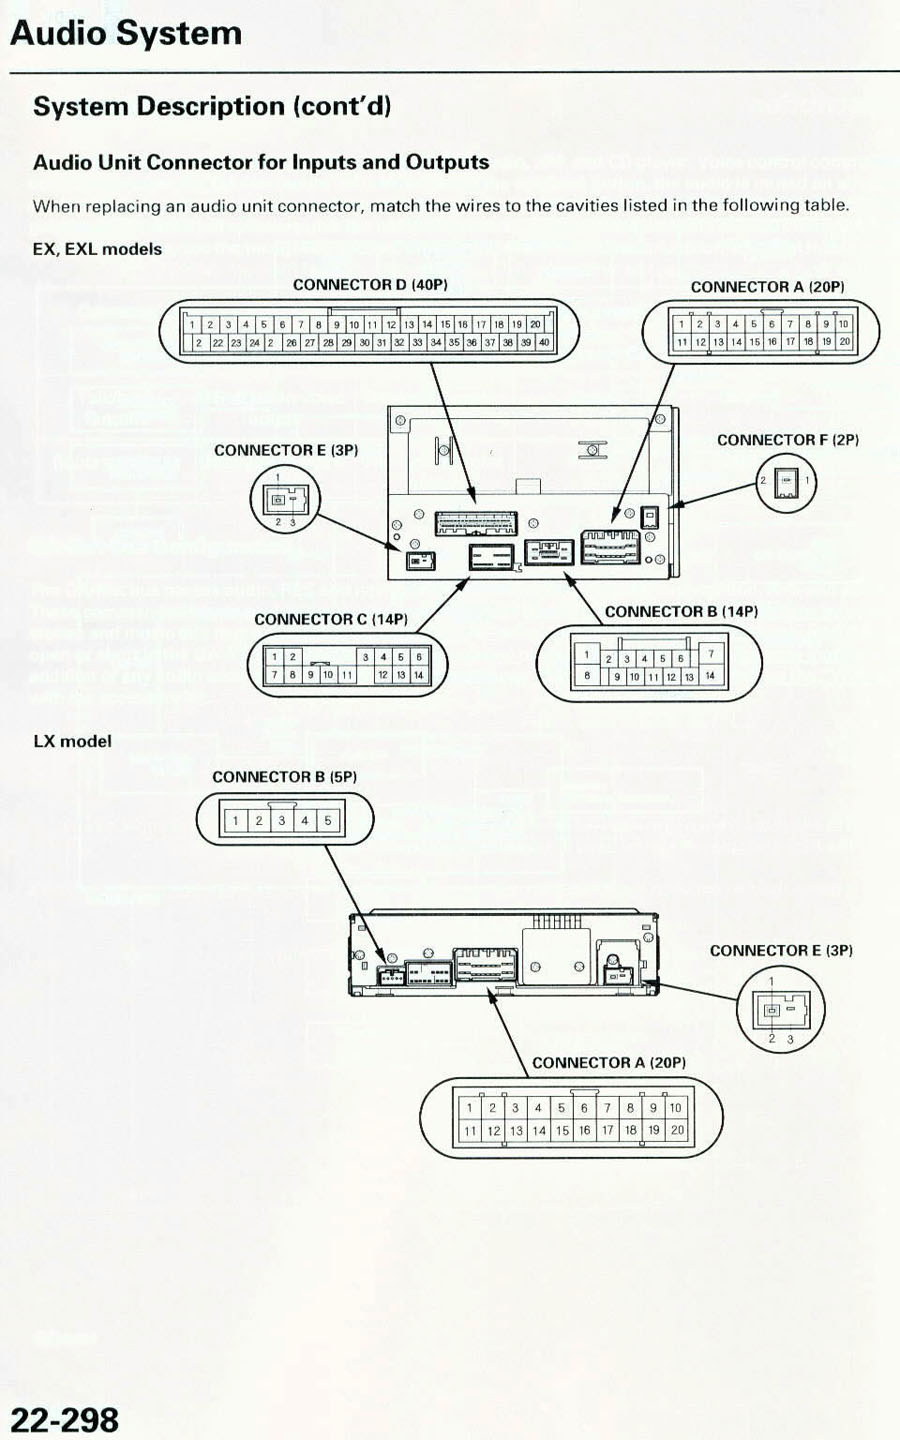 Acura Seat Wiring Diagrams Power Diagram File Type Audio Connector 2006 182 0 Kb 22742 Legend